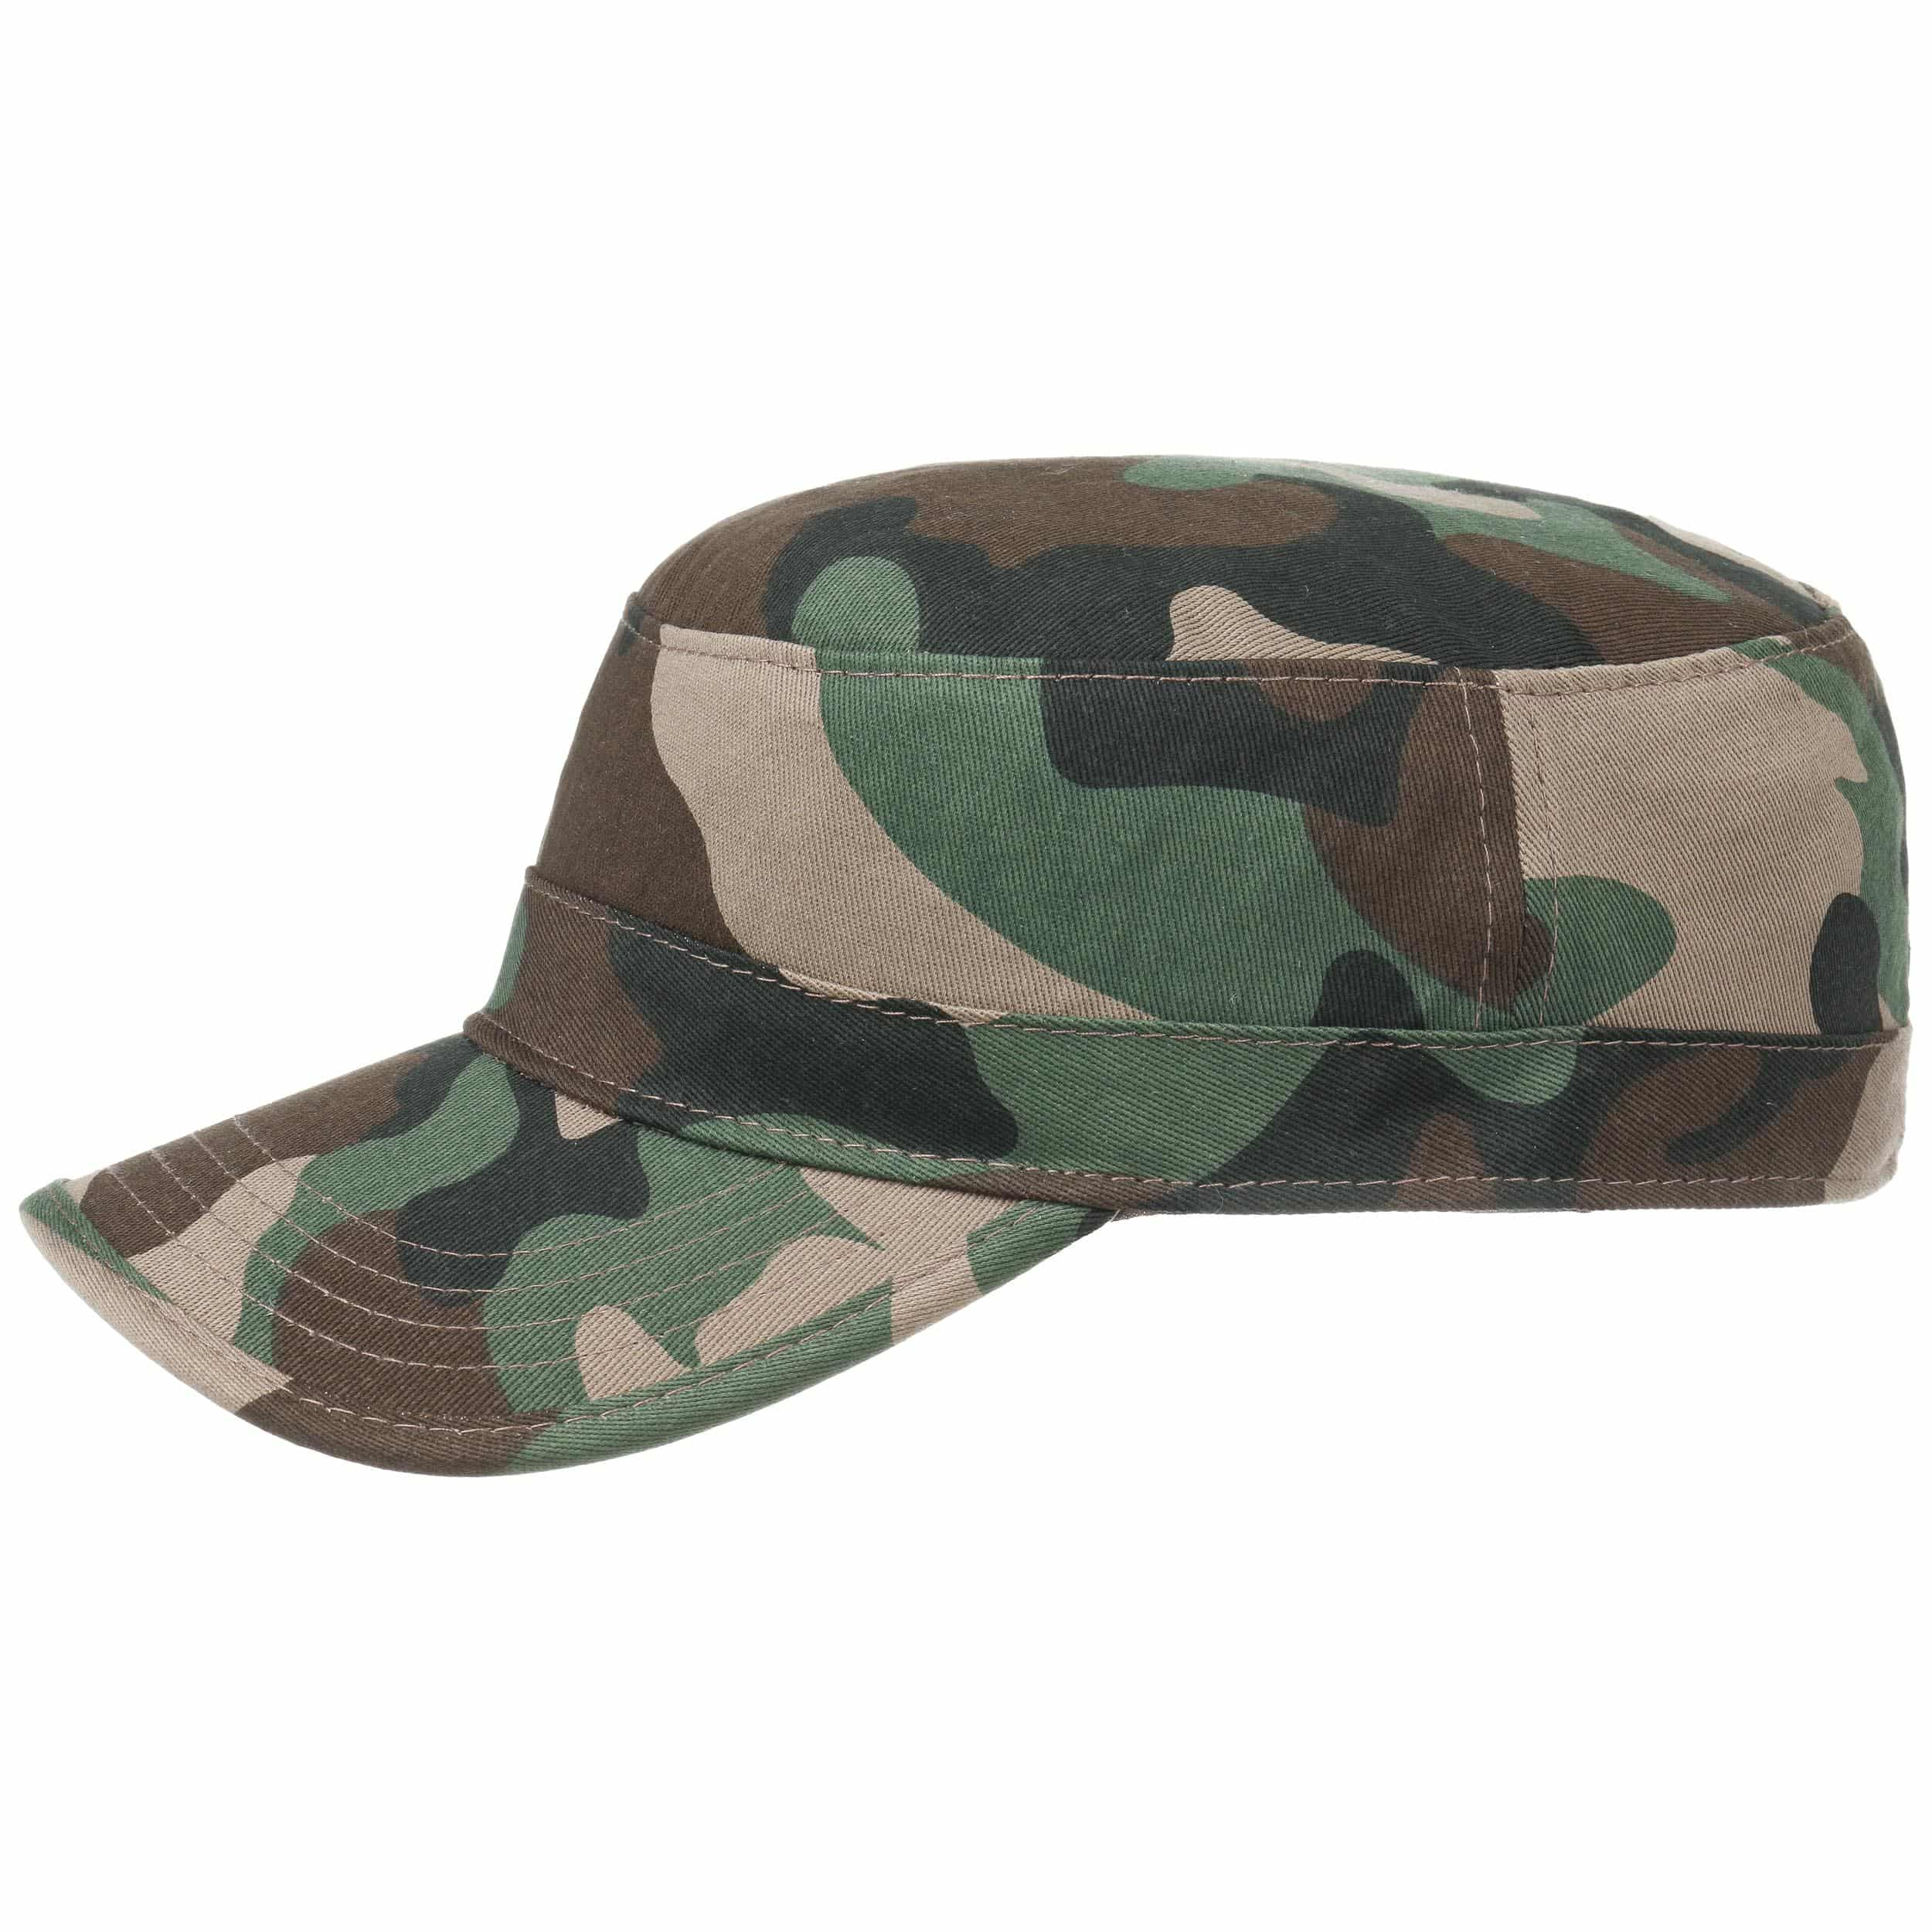 c2f8eafcef4 ... Tank Army Cap - camouflage 6